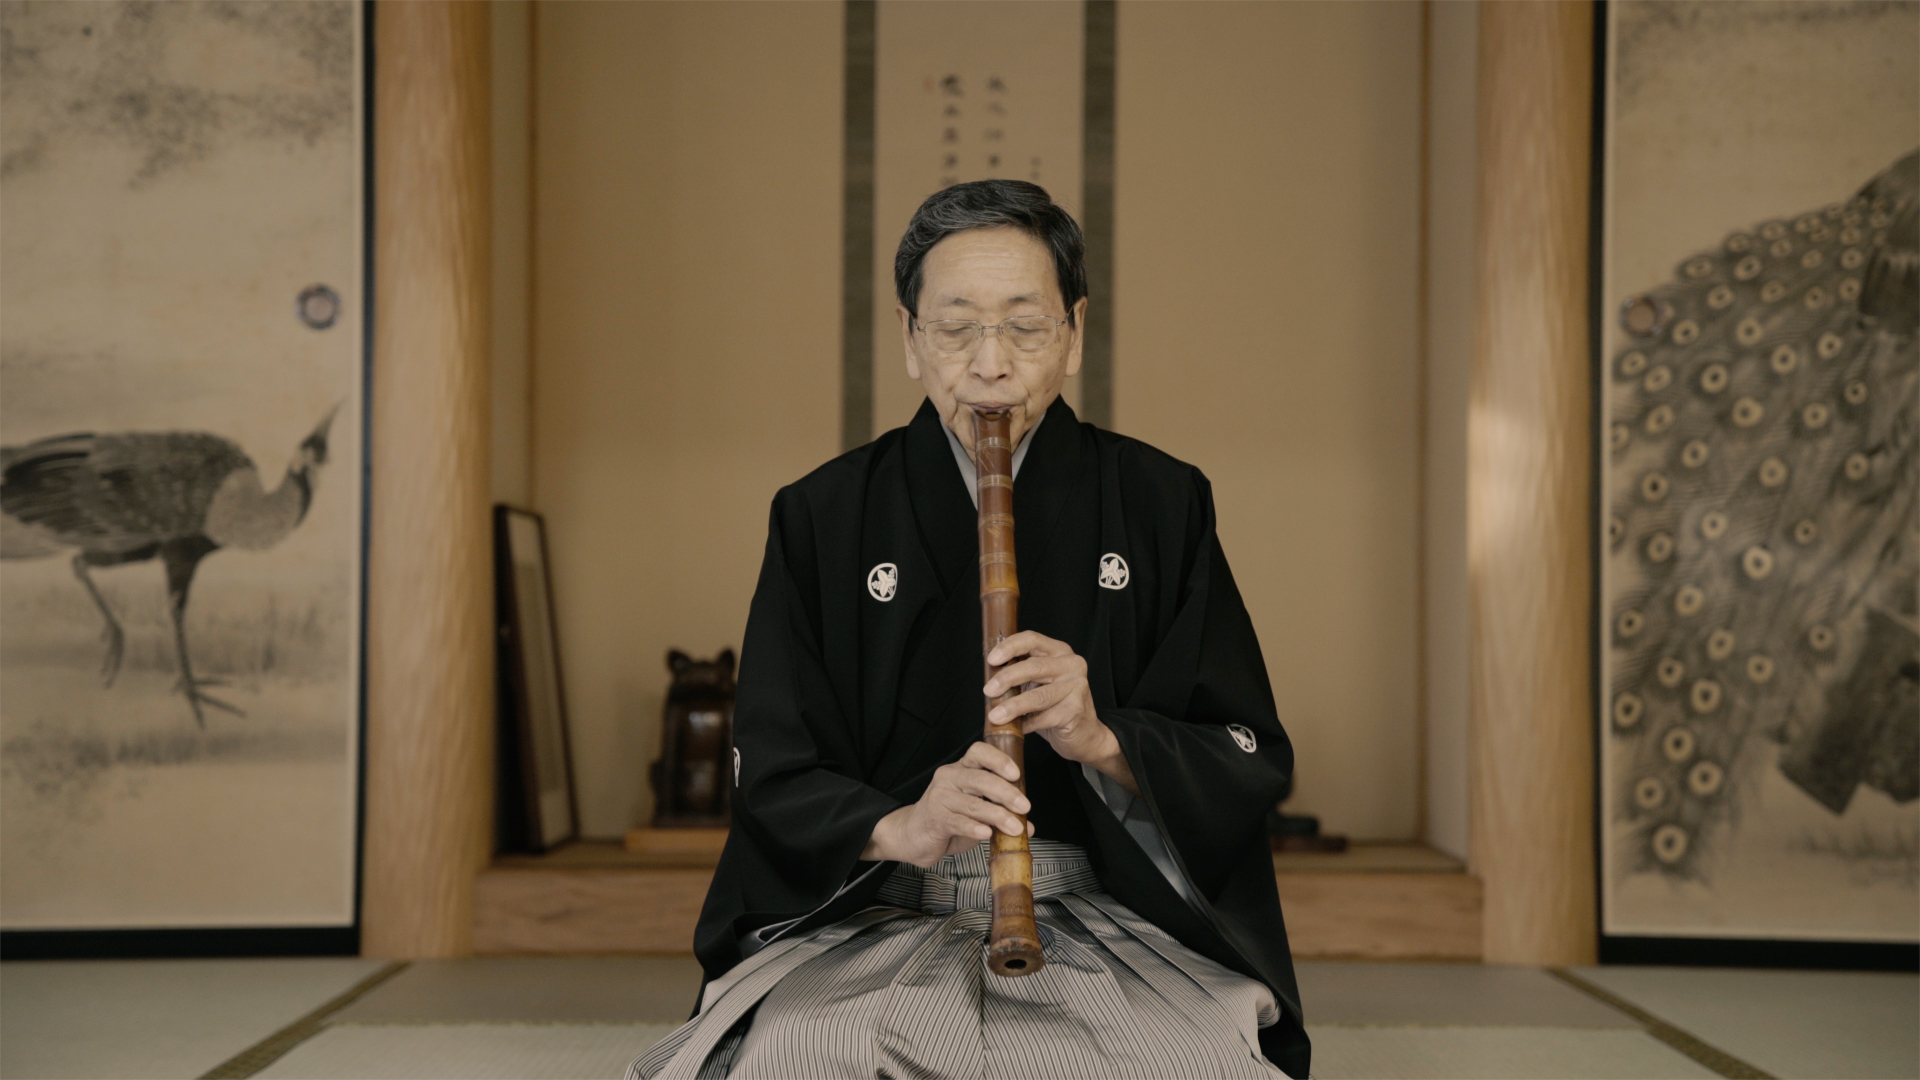 Mizuno Kohmei, President of the Chikumeisha Guild for Shakuhachi and former student of original Golden Record performer and Japanese national treasure Yamaguchi Goro